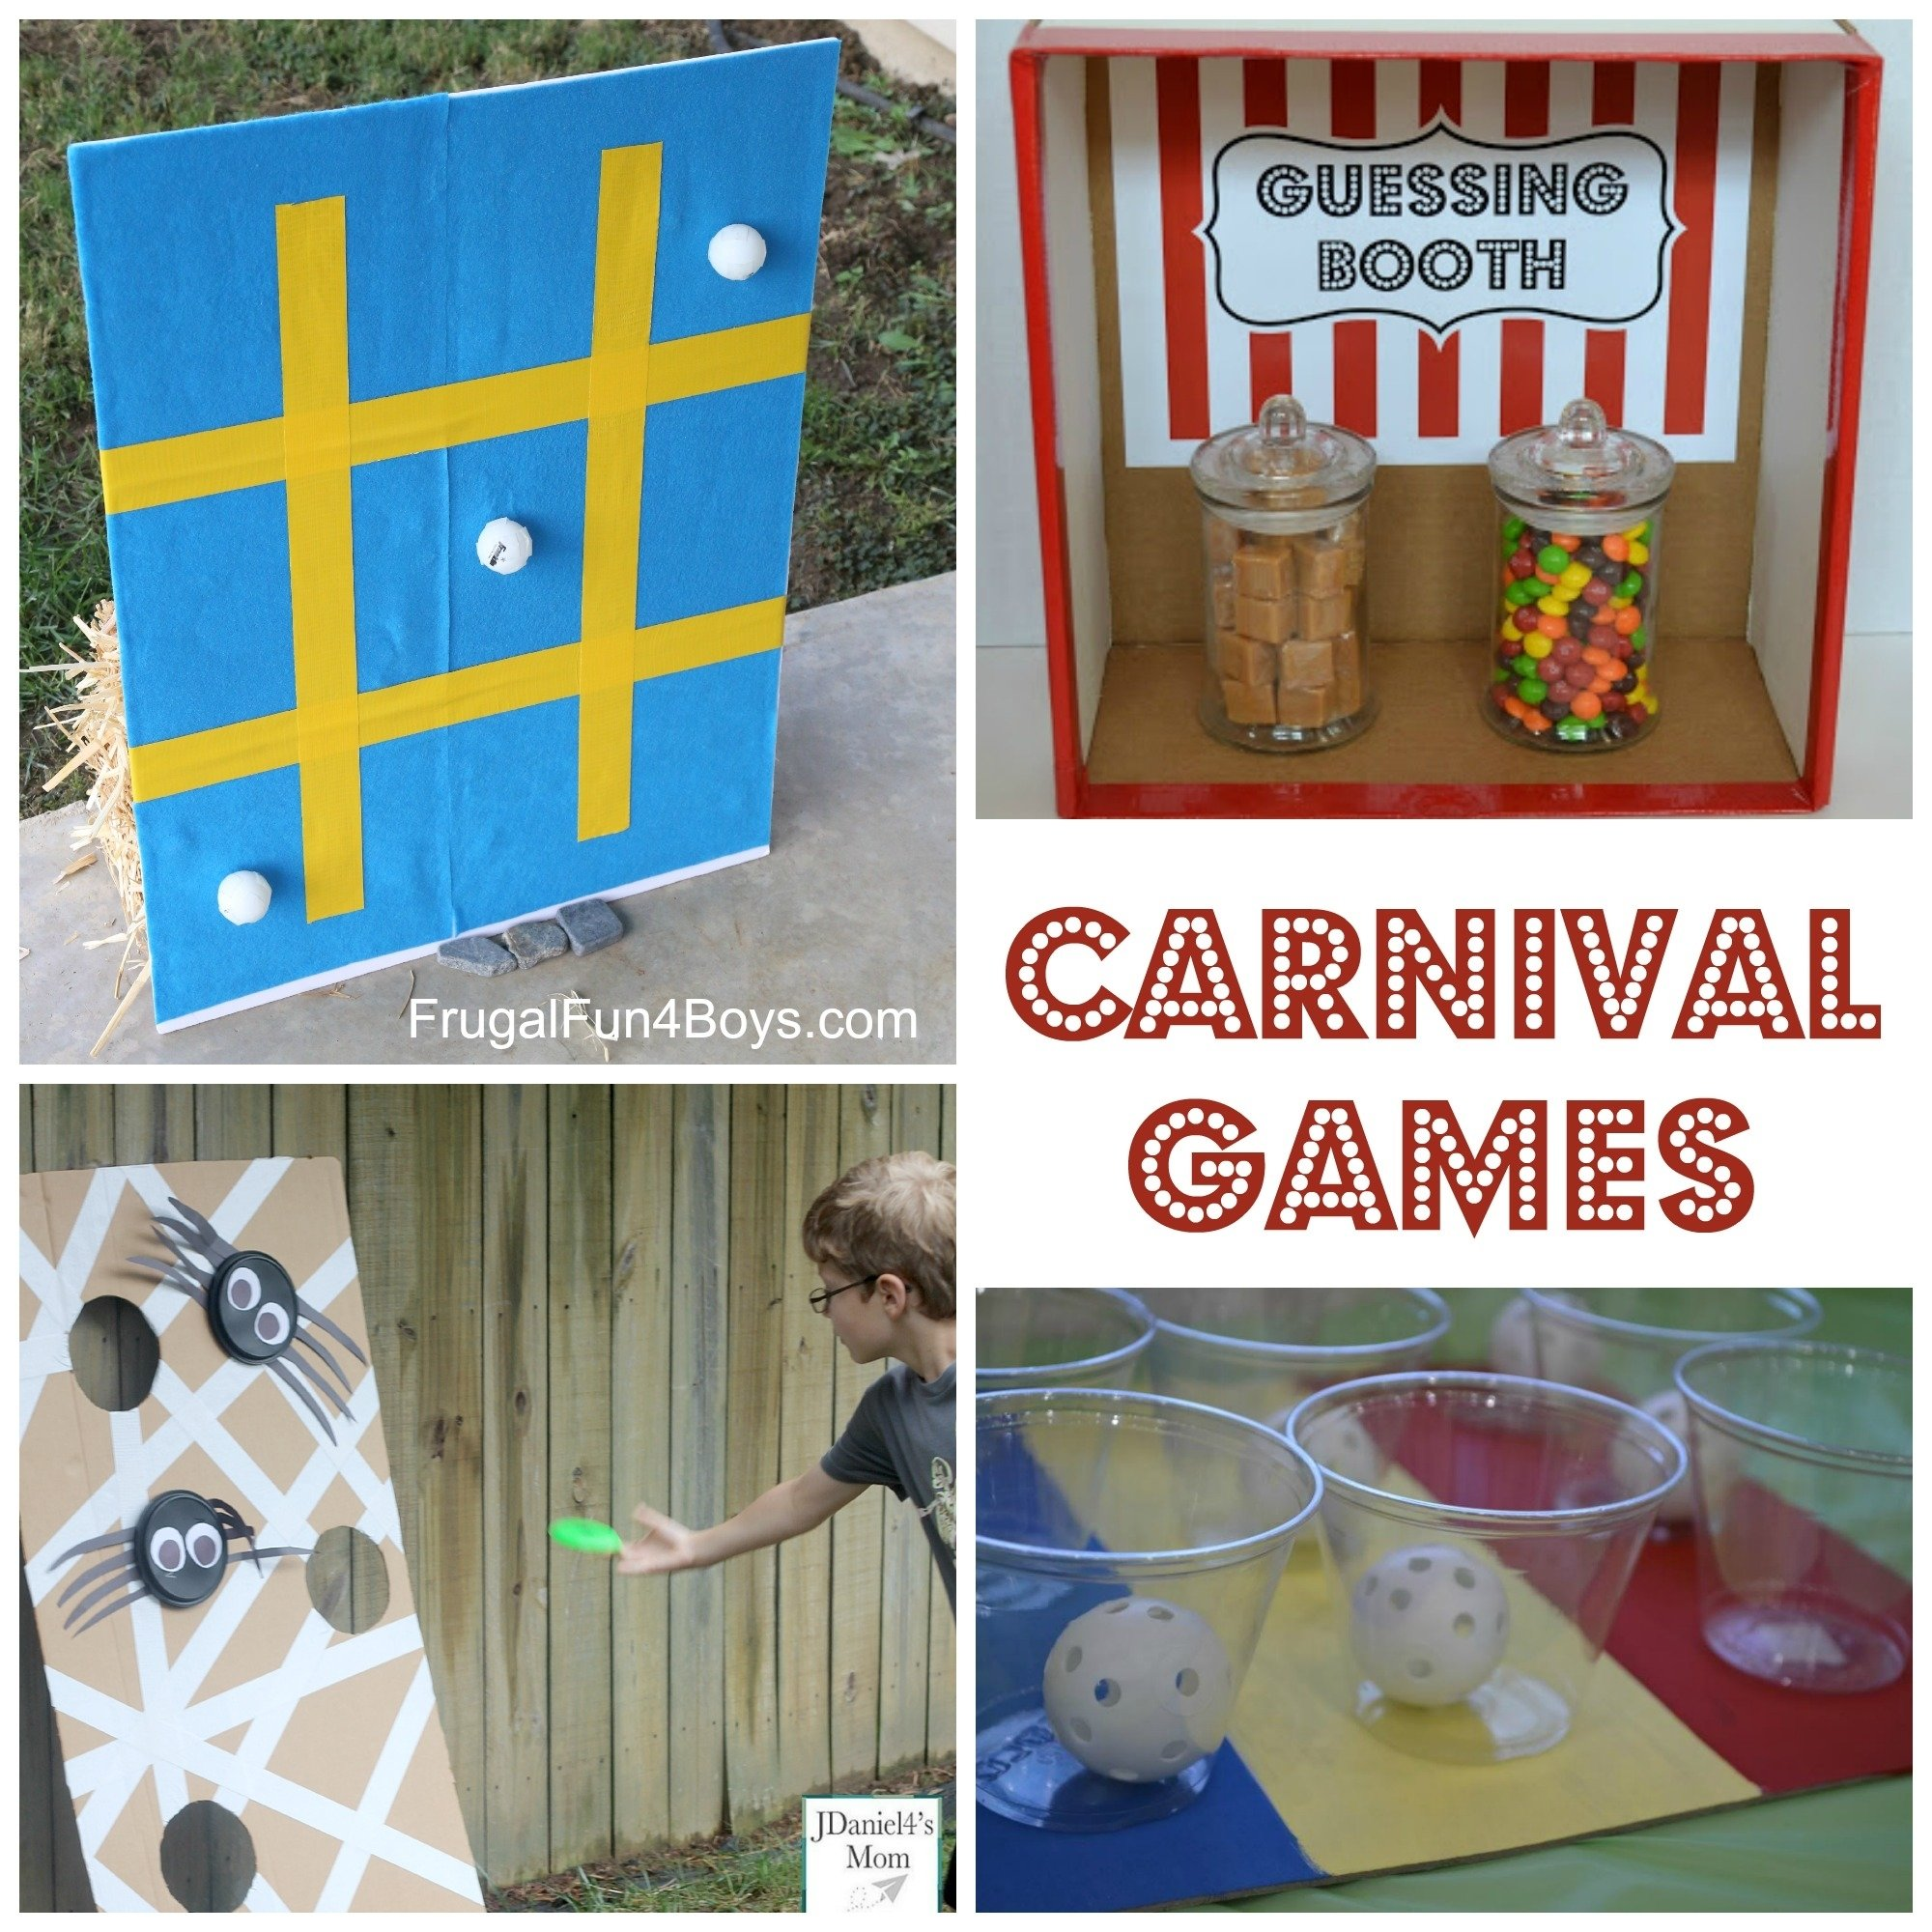 10 Fashionable Fun Game Ideas For Kids 25 simple carnival games for kids 1